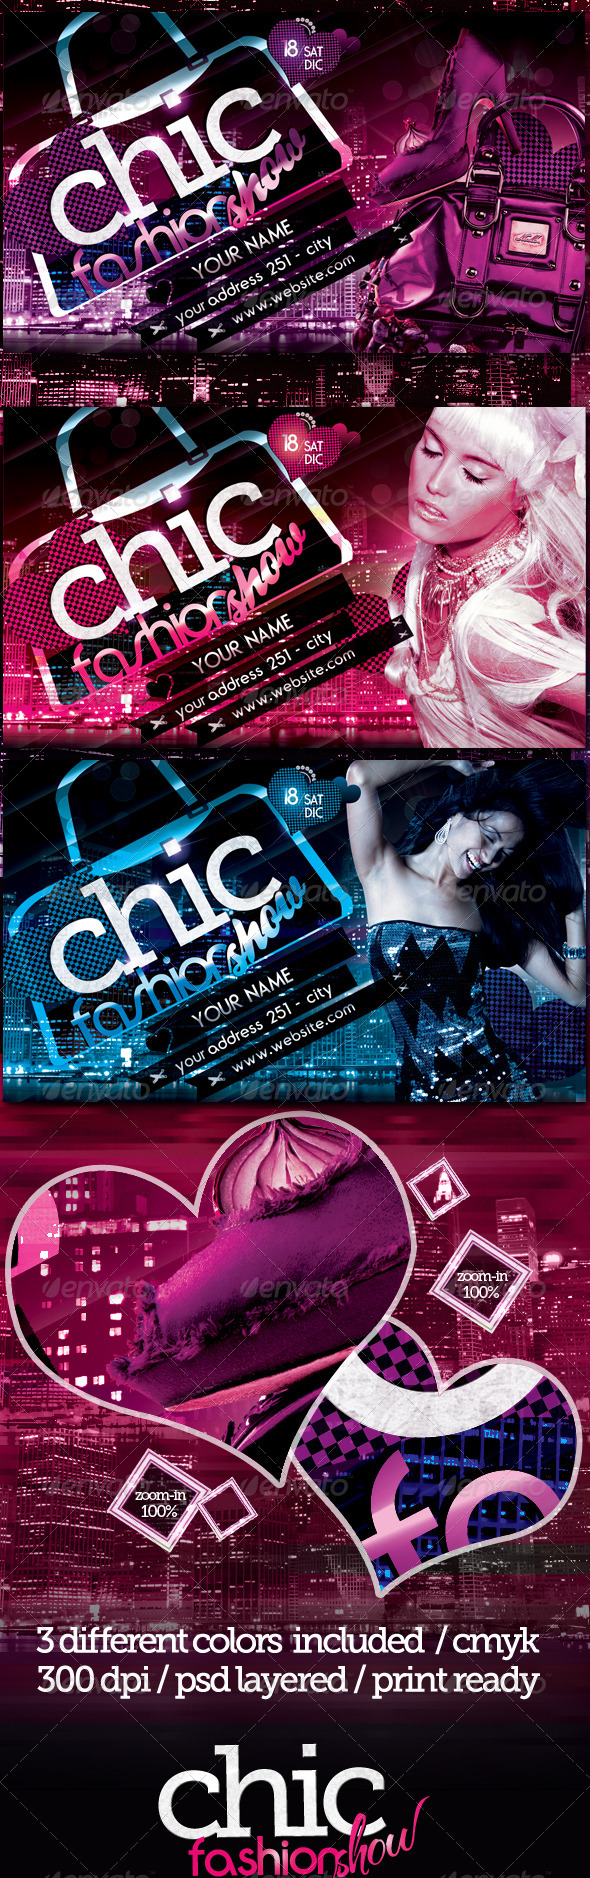 Chic Fashion Show Flyer Template - Clubs & Parties Events